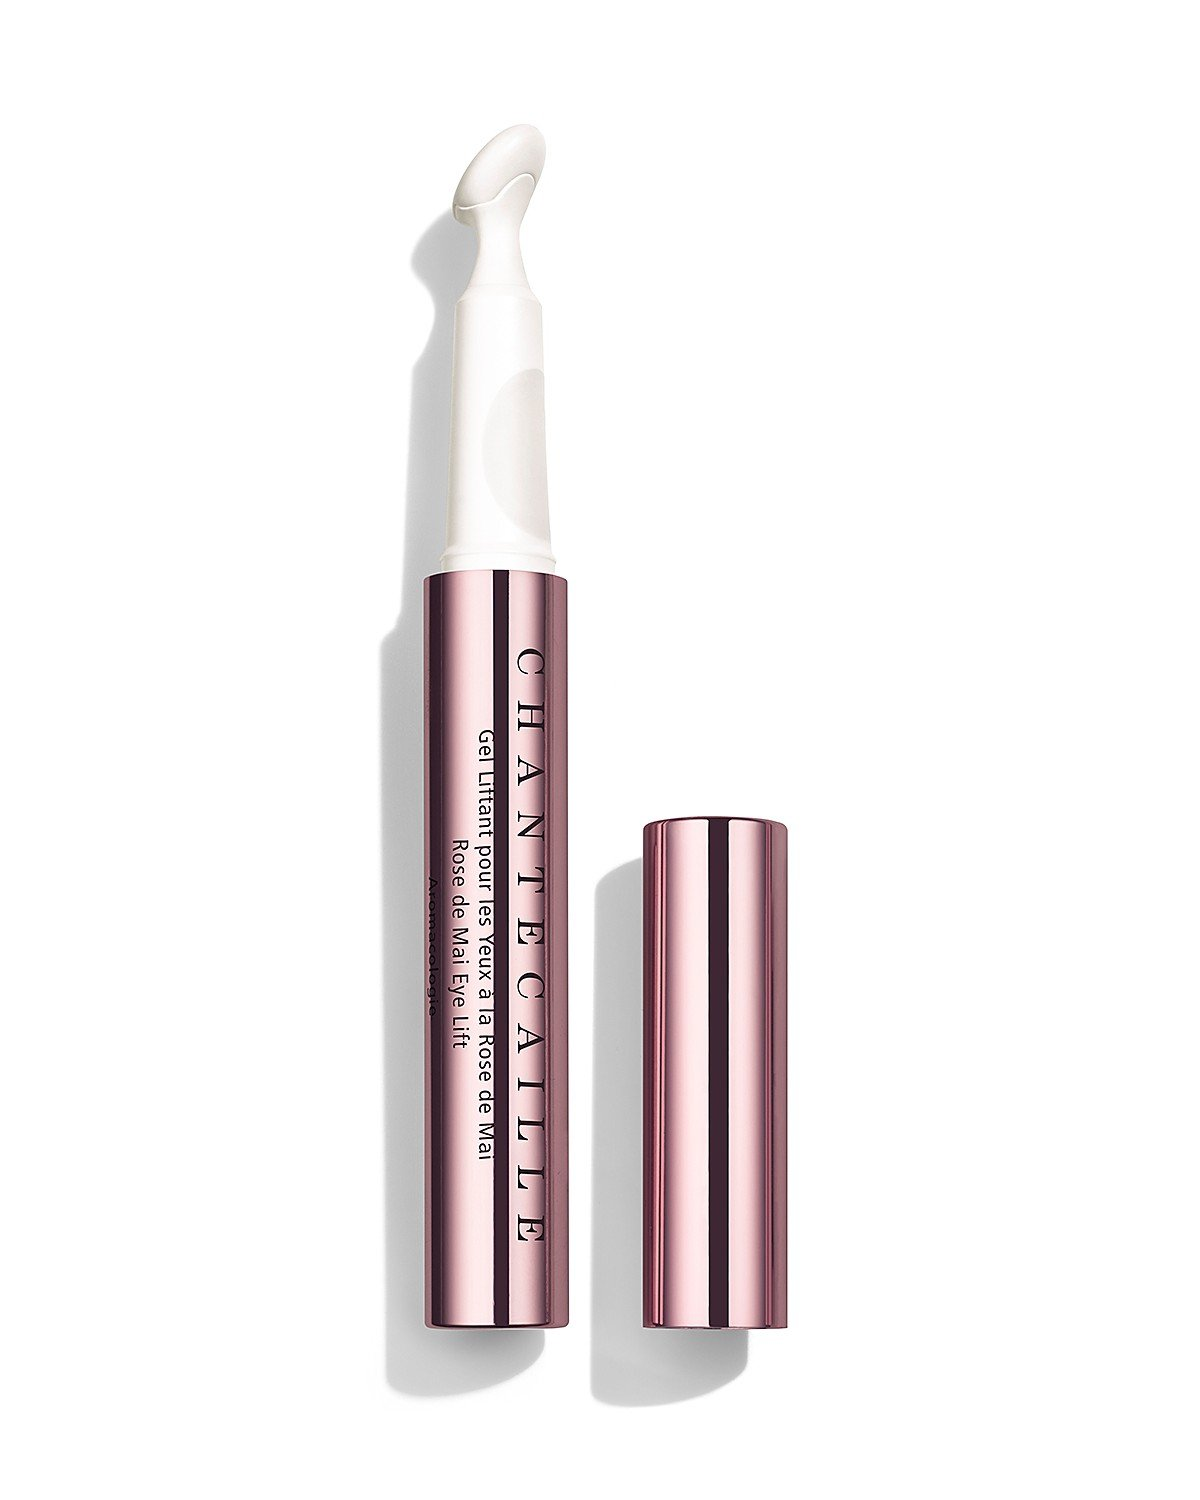 rose de mai eye lift